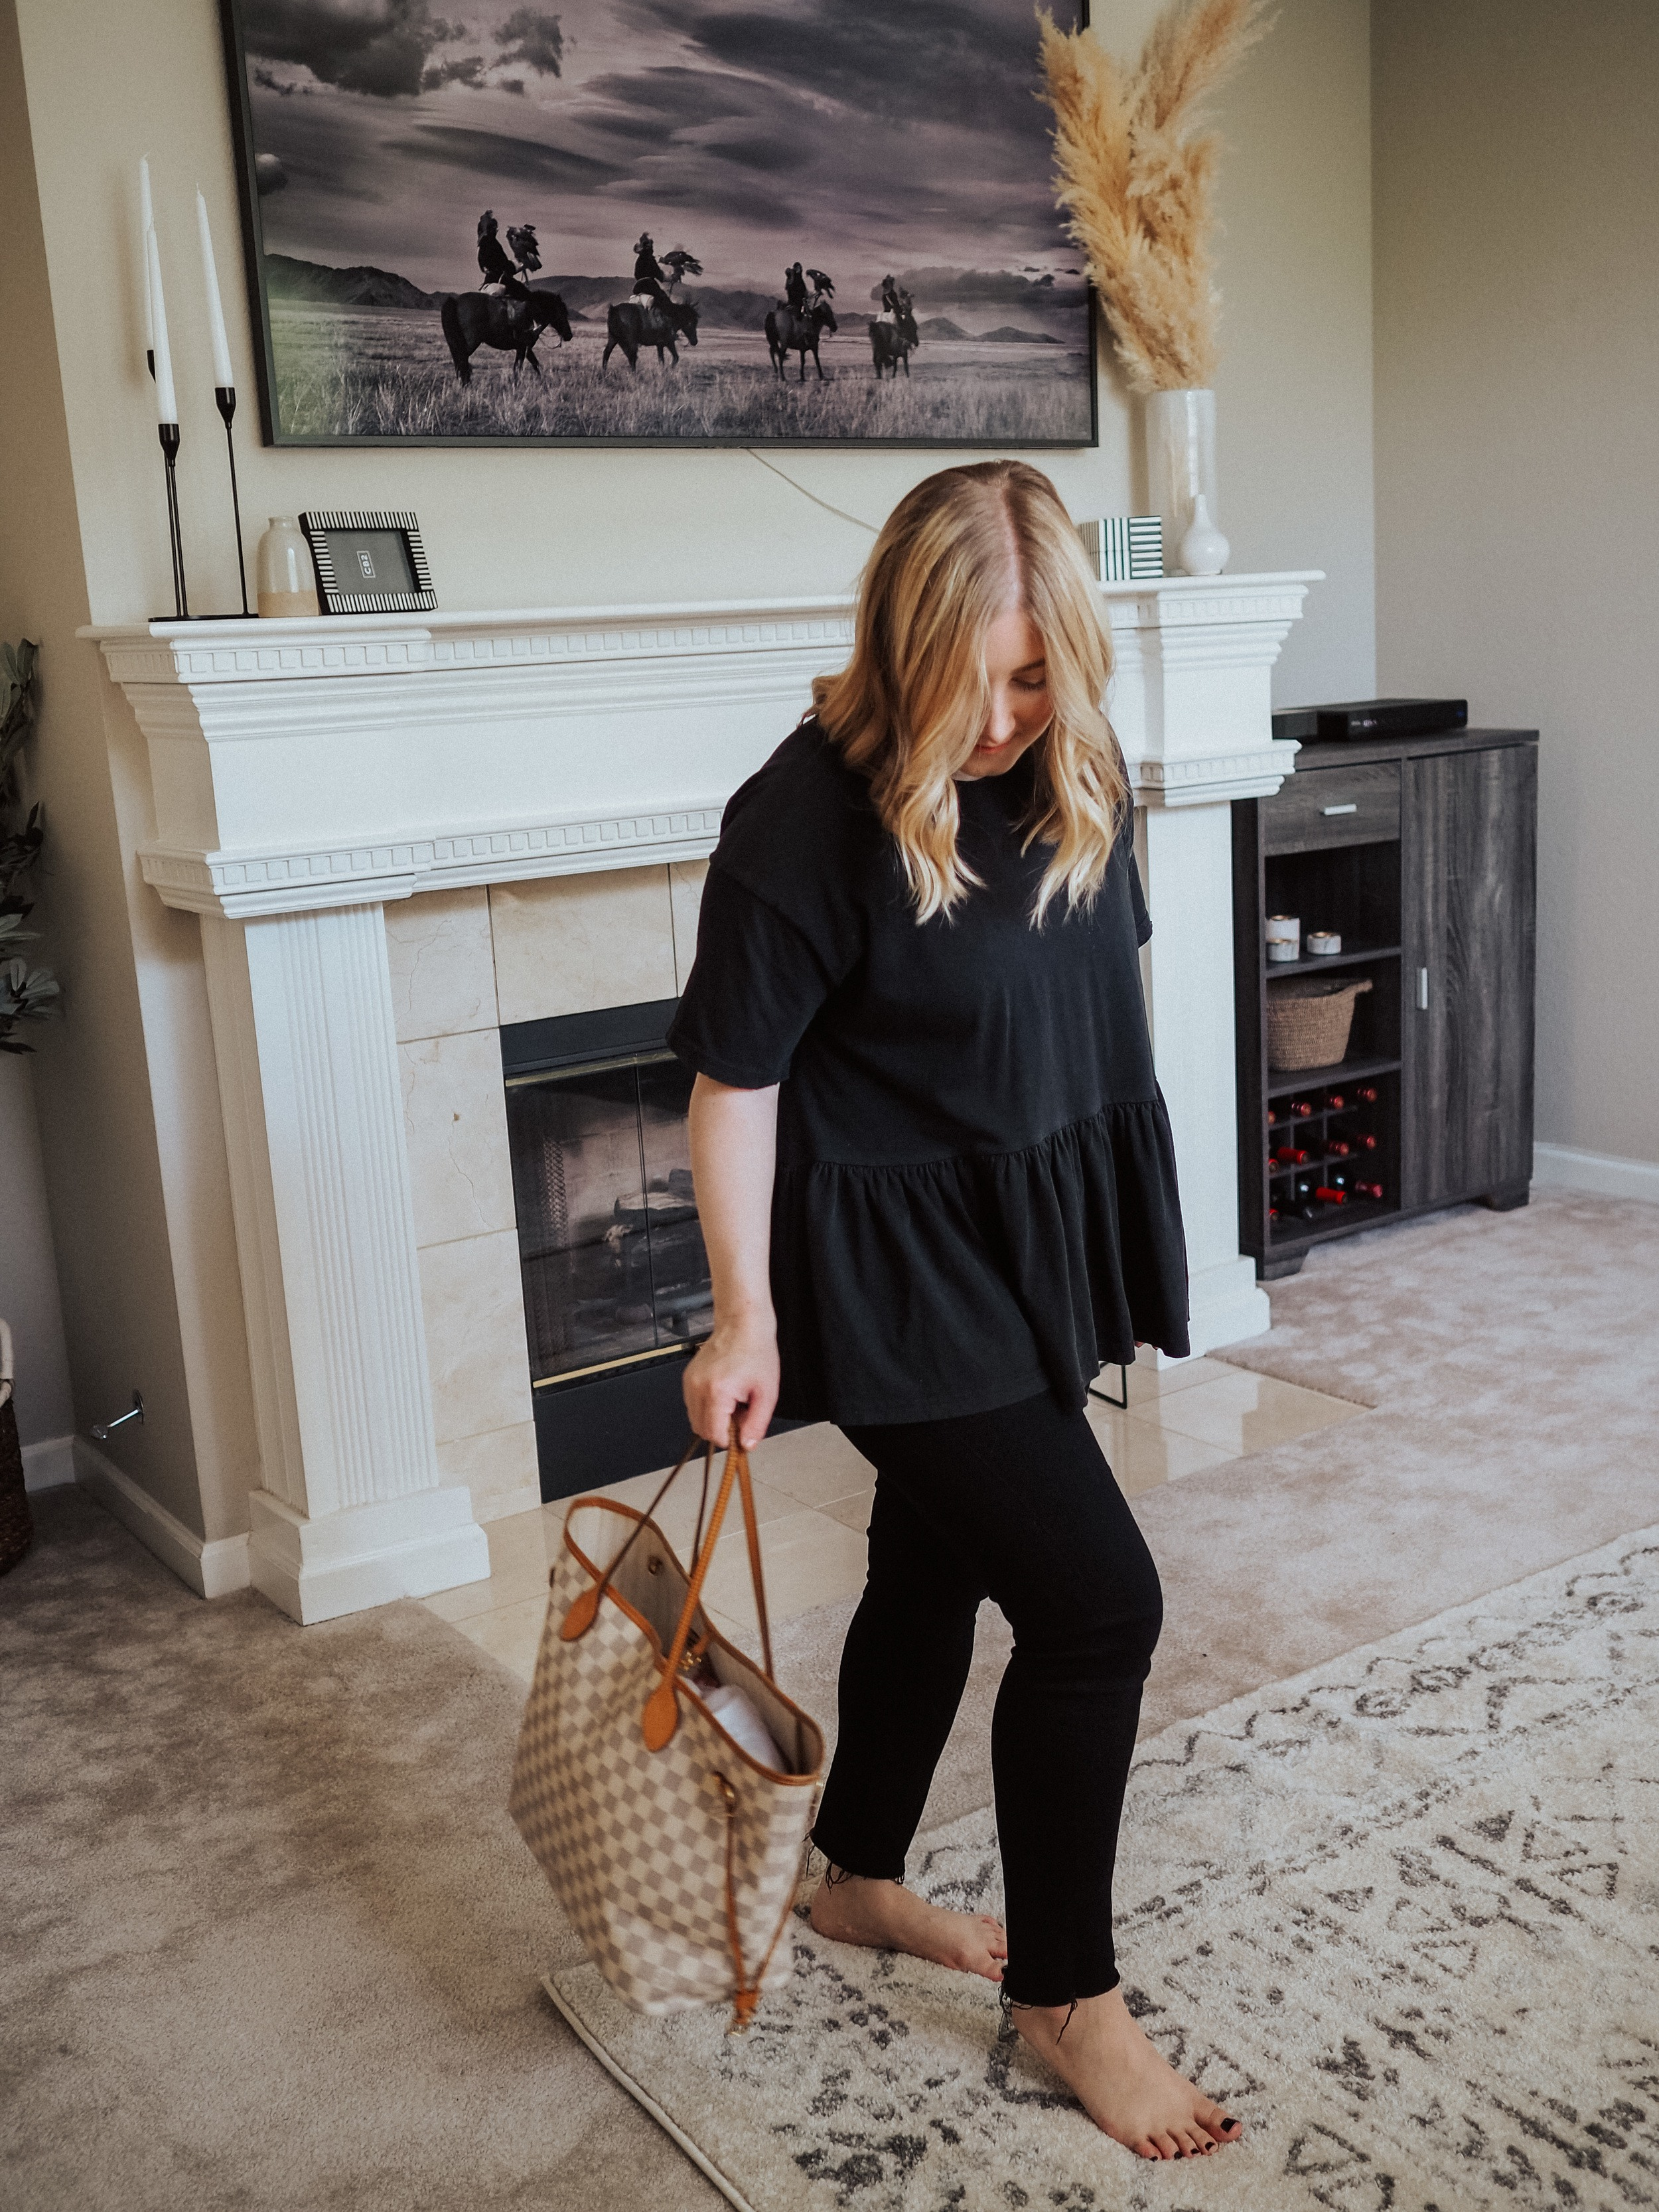 Kelsey from Blondes & Bagels reviews both the MM and GM sizes of the Louis Vuitton Neverfull. Find out if these designer bags are worth it.